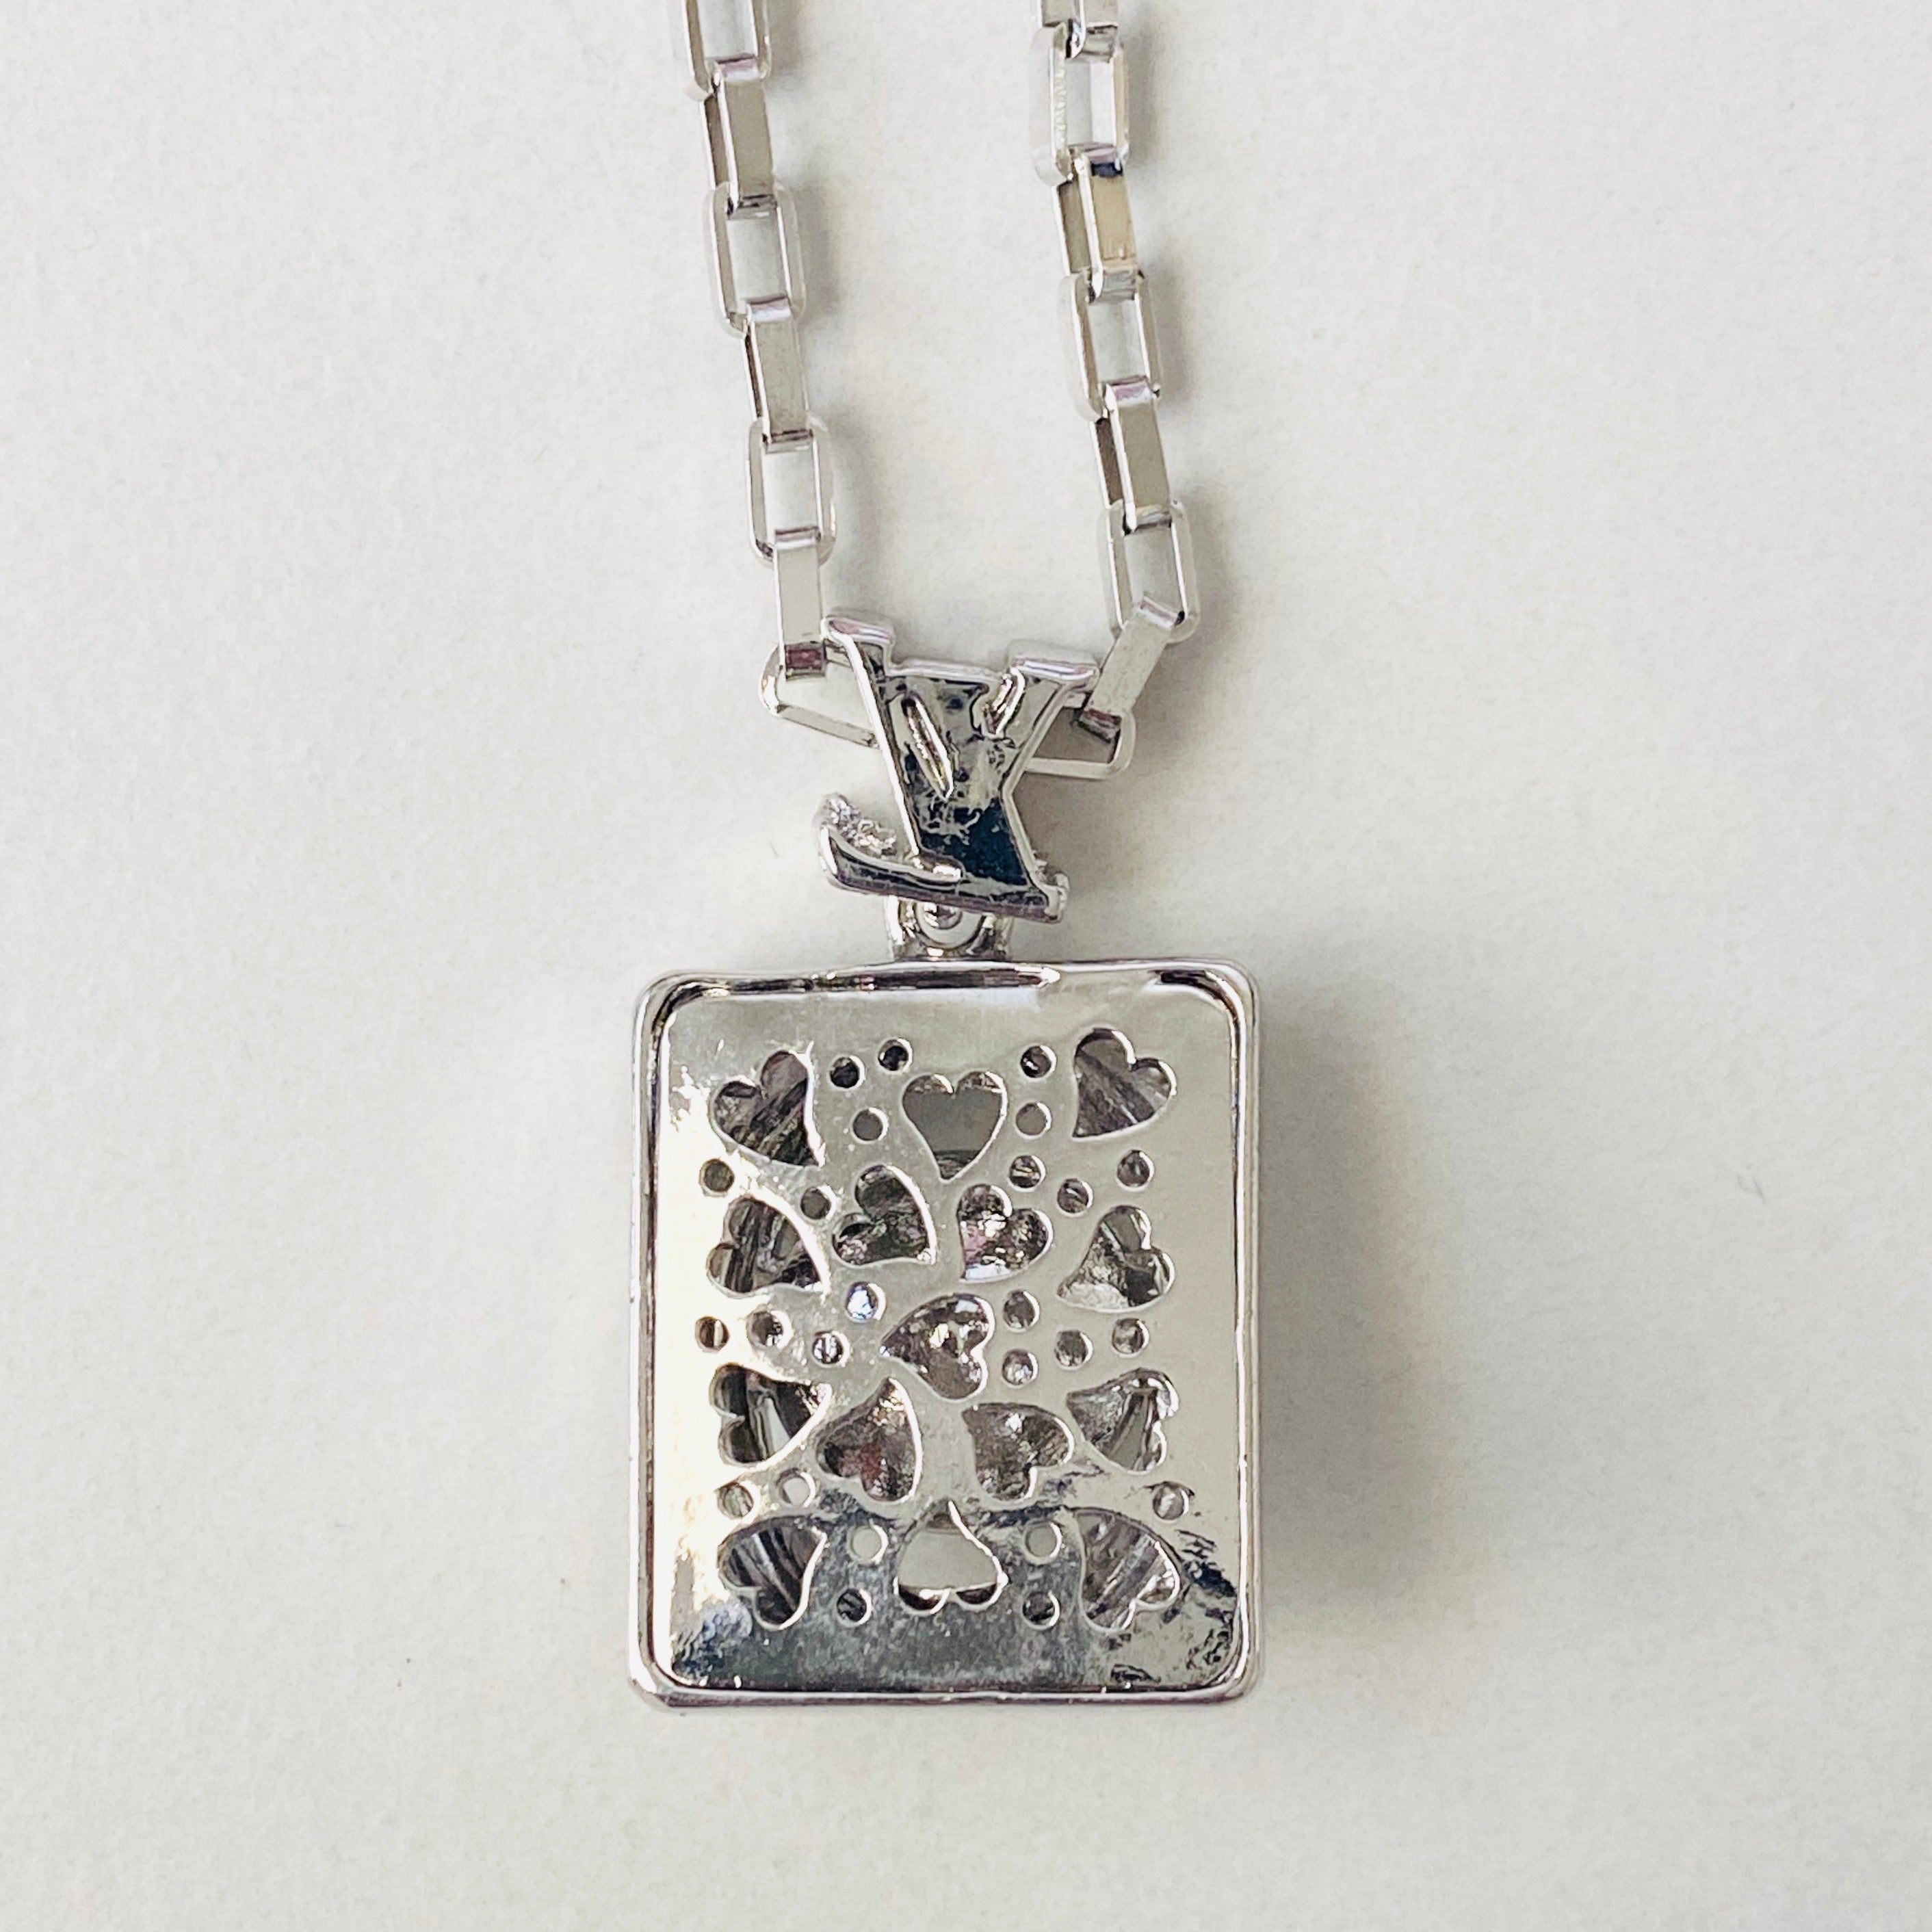 LV Diamond Pendany Necklace